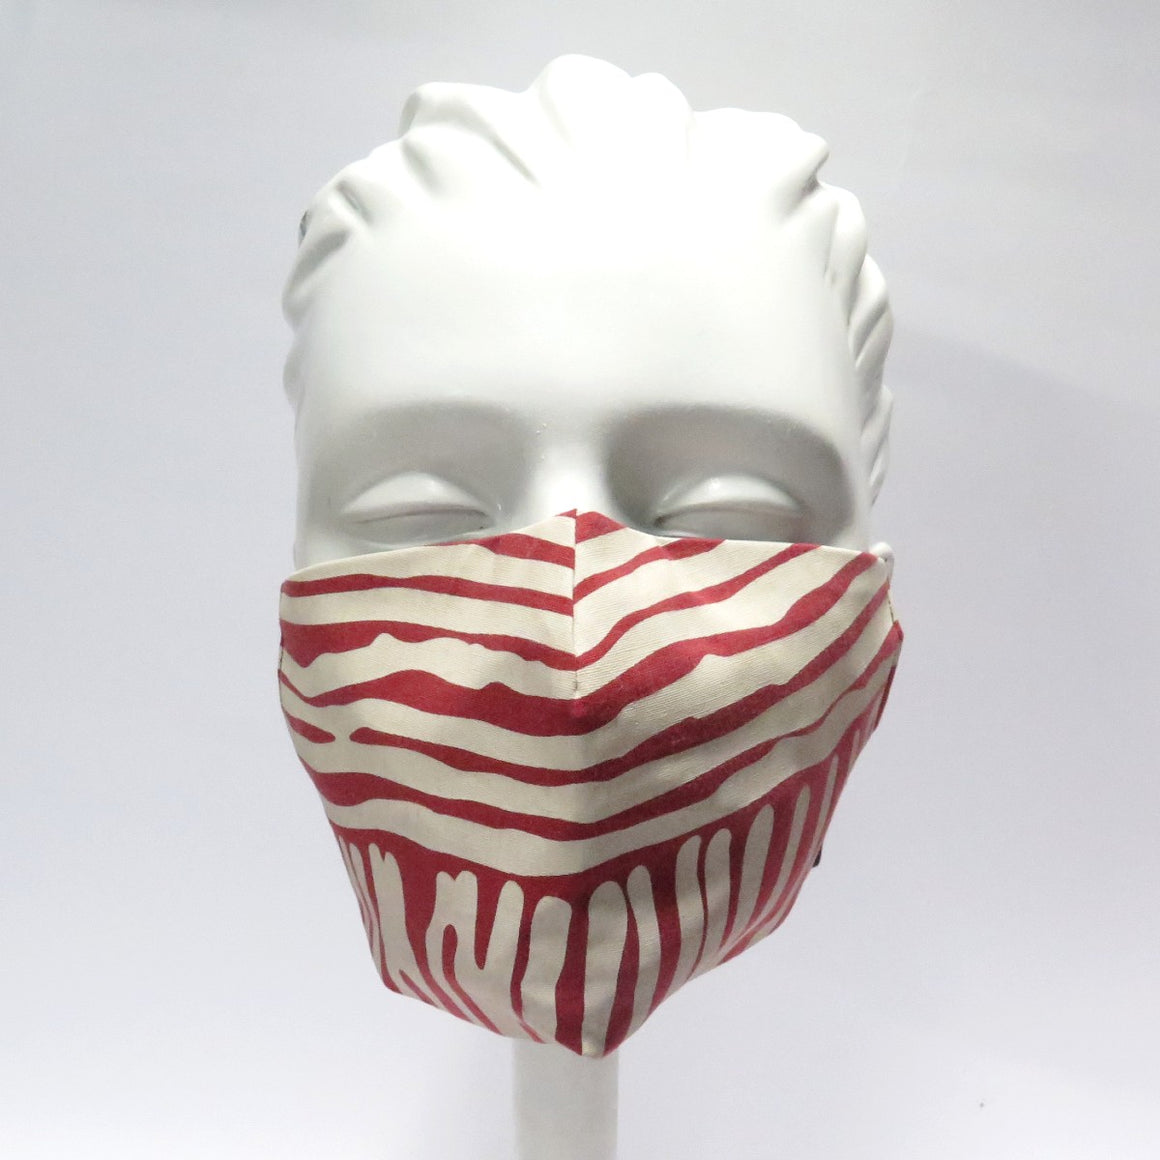 A mannequin is shown wearing a facemask made from fabric designed by artist Eunice Napanangka Jack. The fabric consists of white stripes on a deep red base.